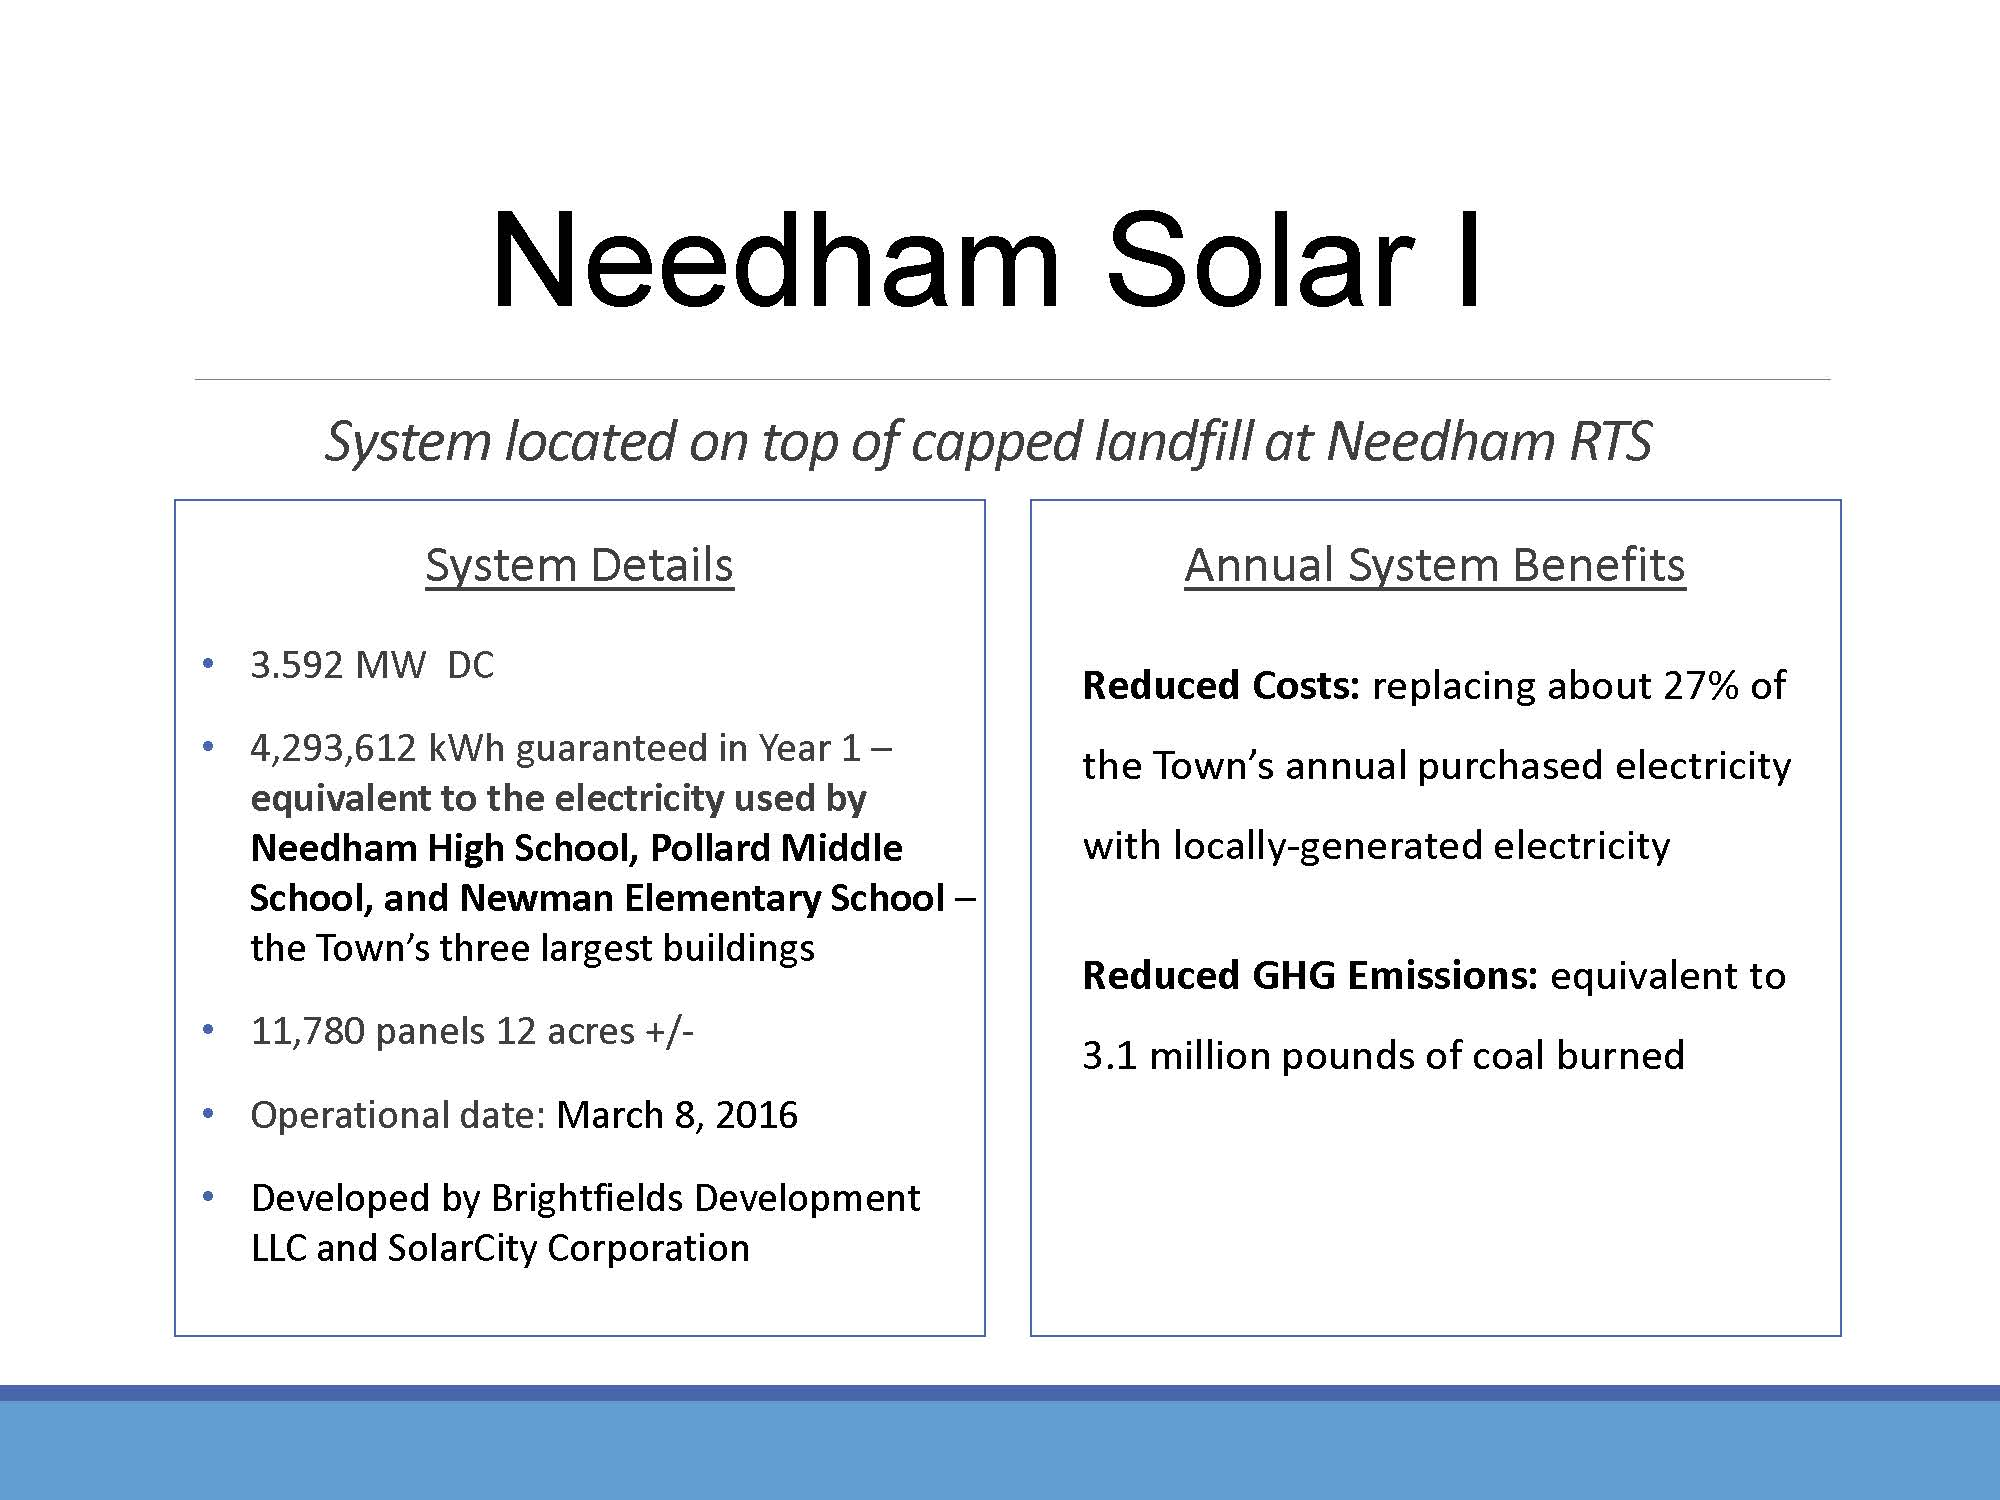 Page 2 of the Green Needham Presentation of the Solar 1 Landfill Project